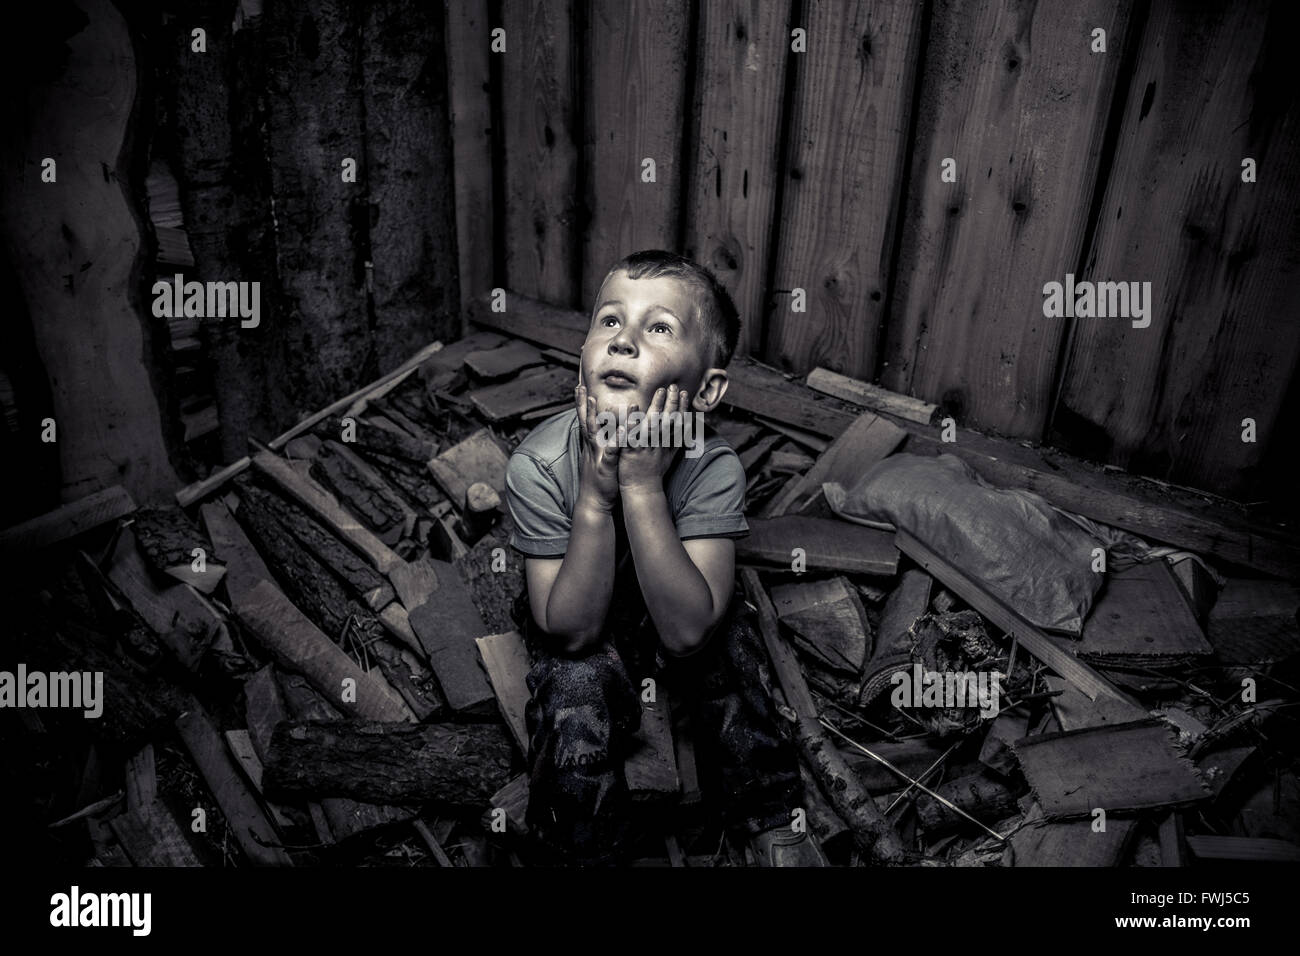 High Angle View Of Frightened Boy Looking Up In Abandoned Room - Stock Image